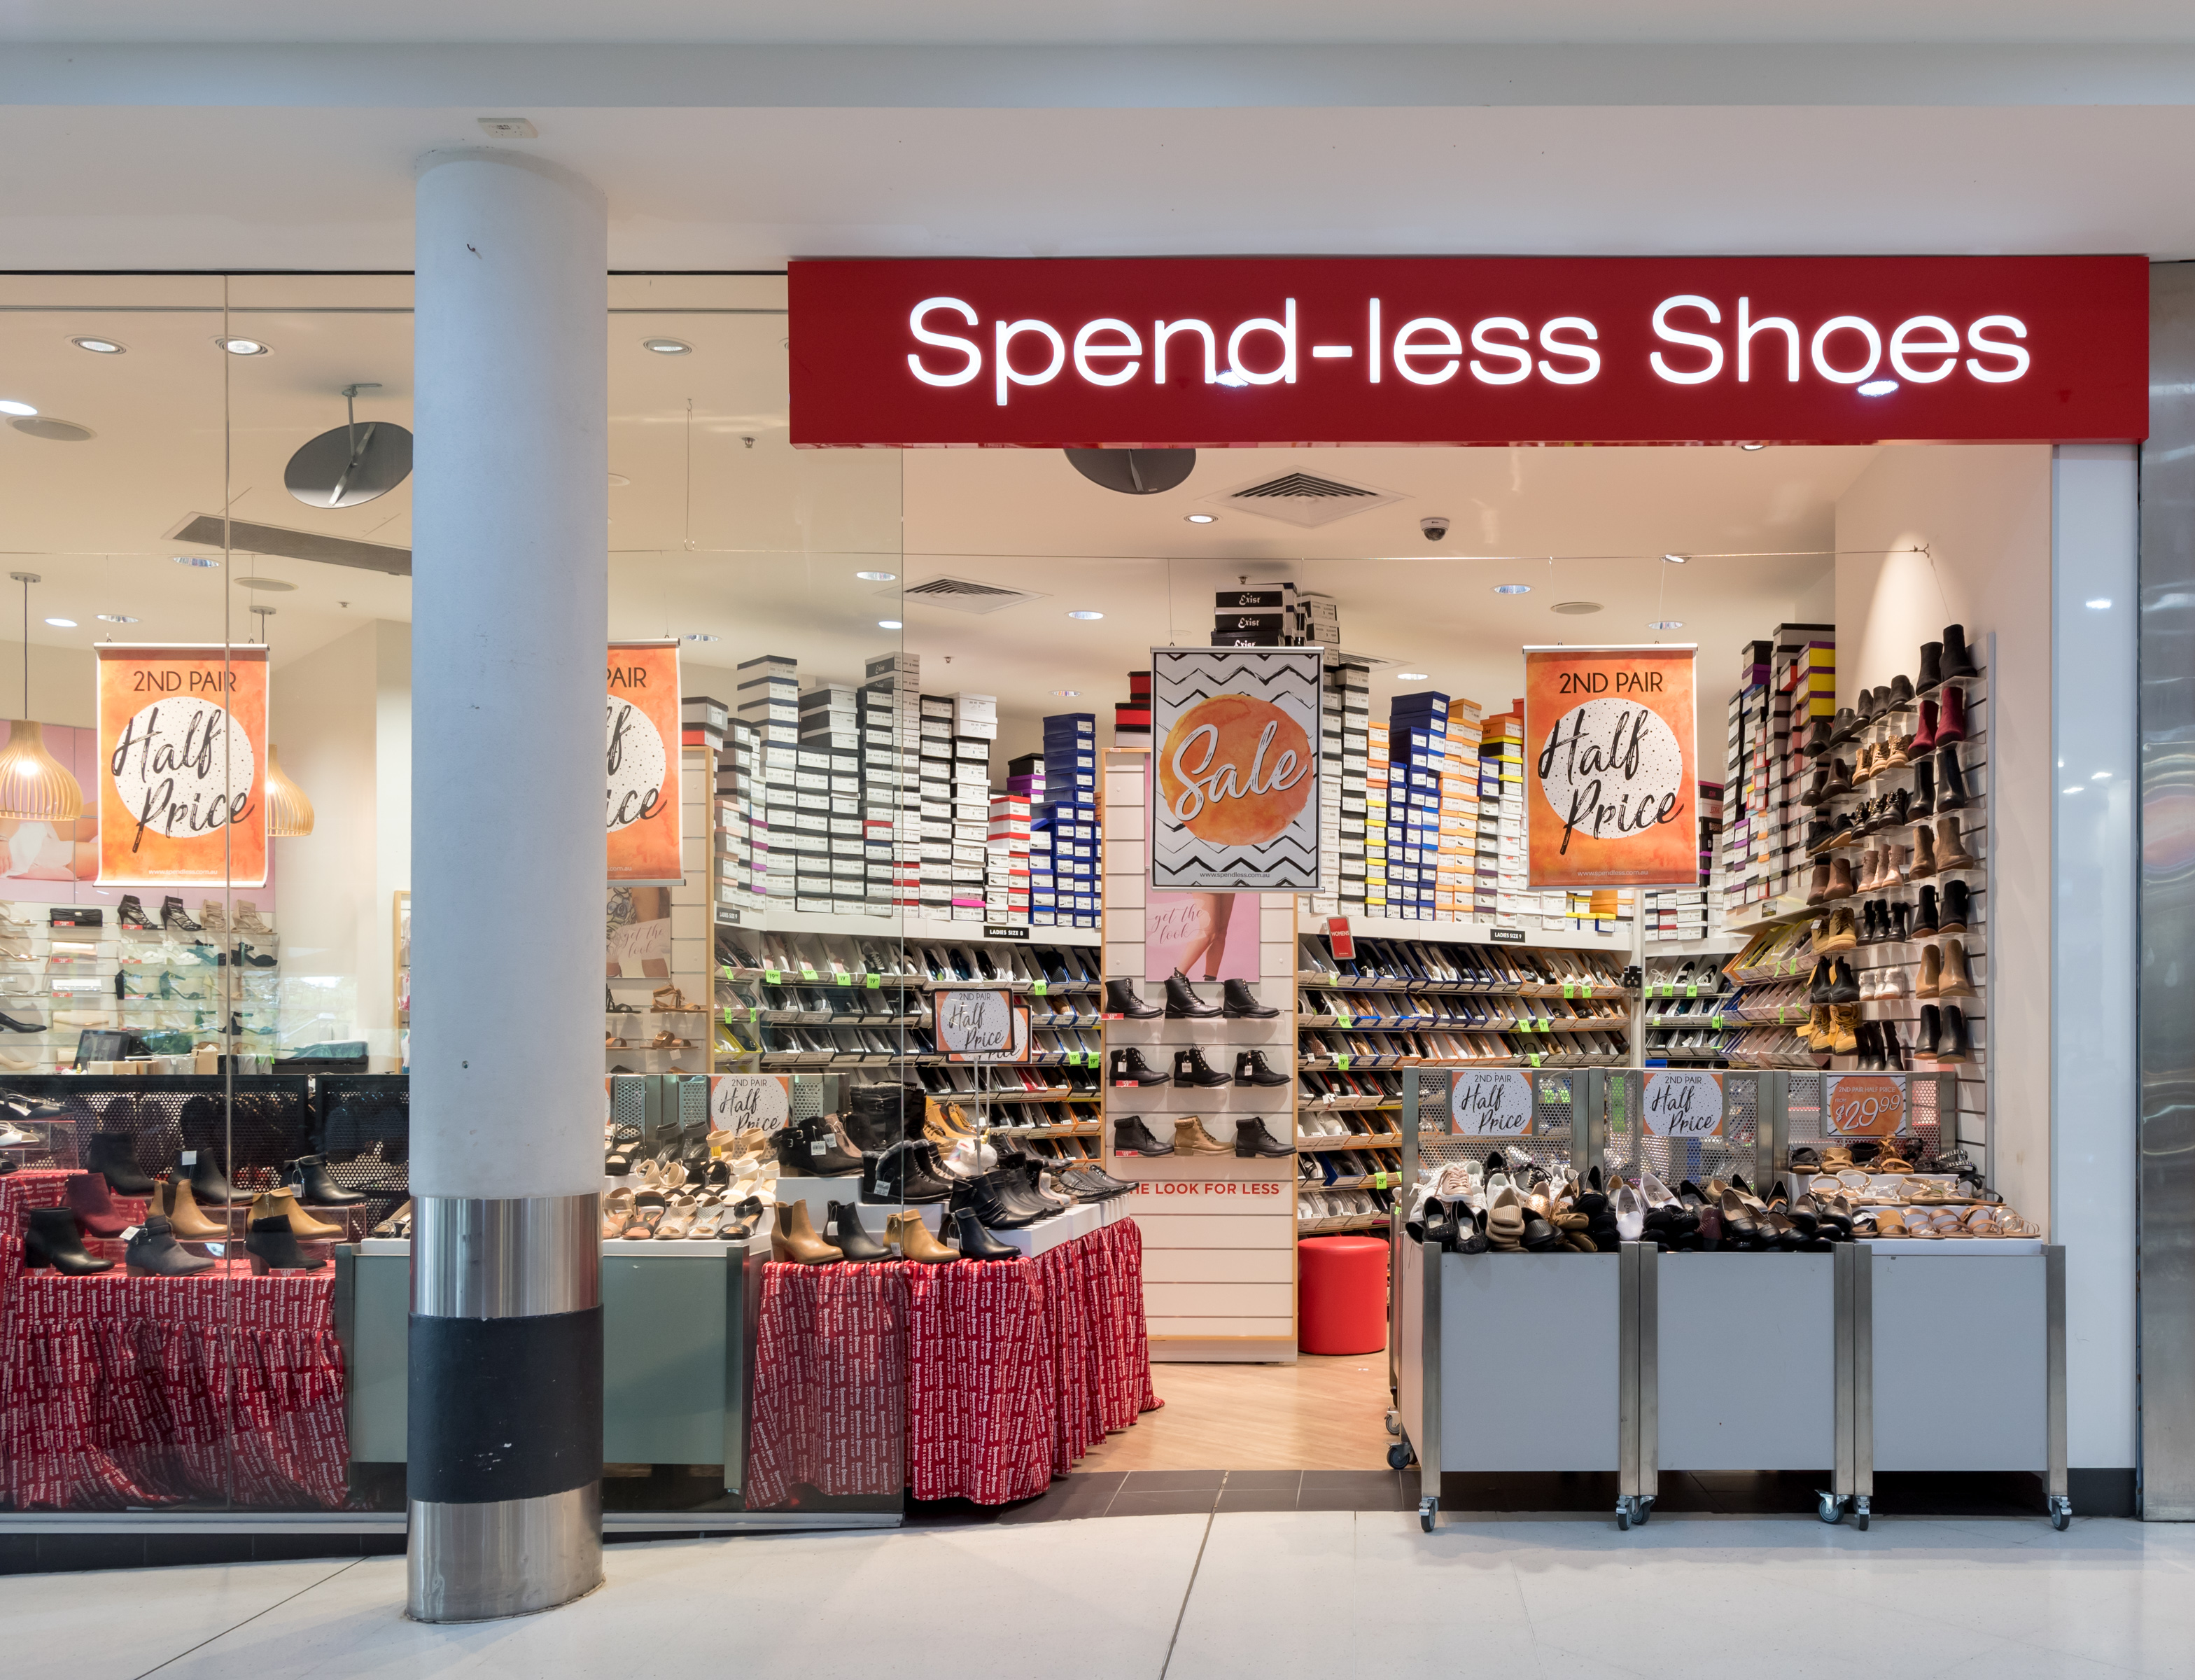 Spendless Shoes - Latest Fashions Looks For Less - Campsie